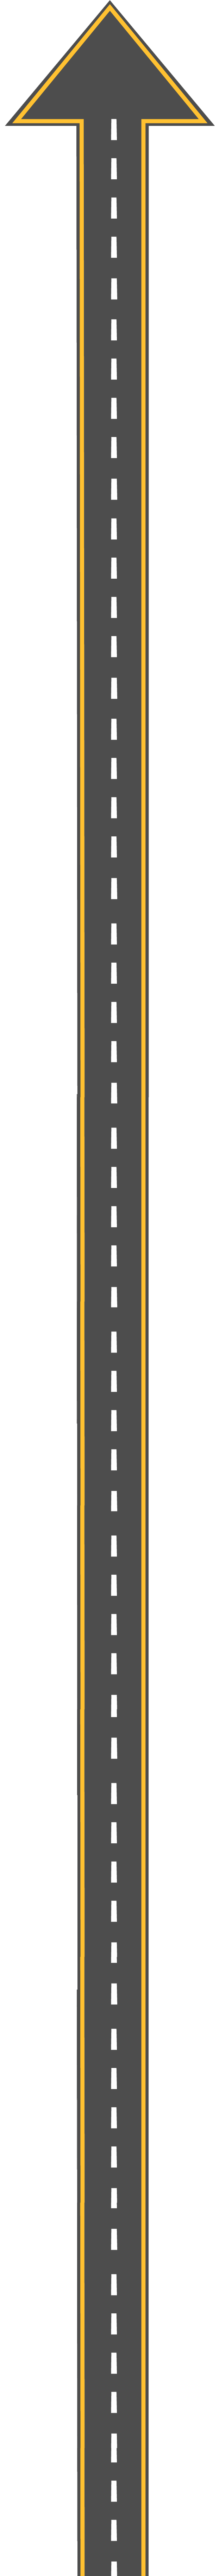 Road with an arrow on top